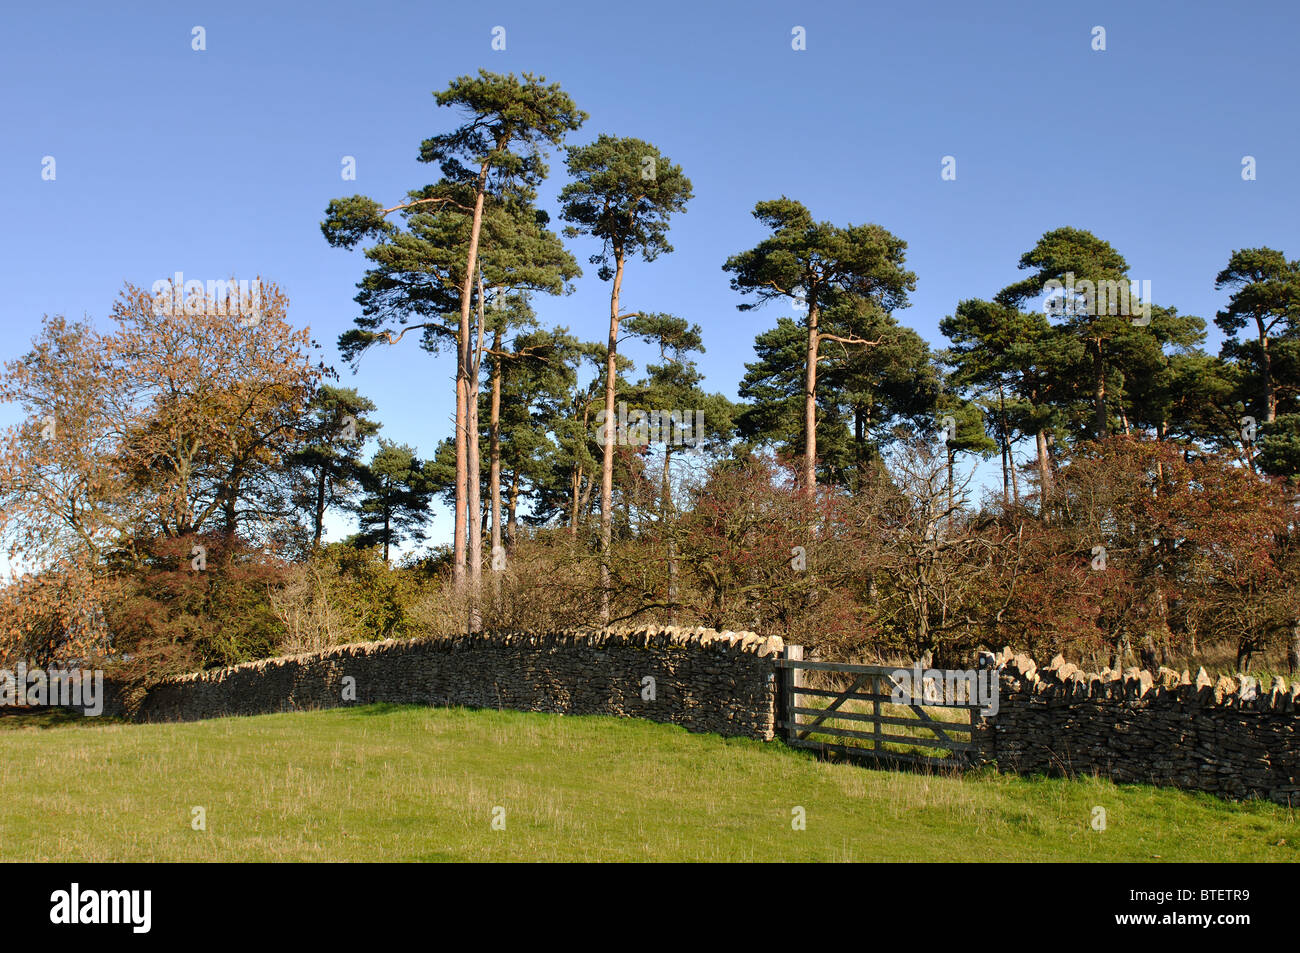 A stand of pine trees on Bredon Hill, Worcestershire, England, UK - Stock Image